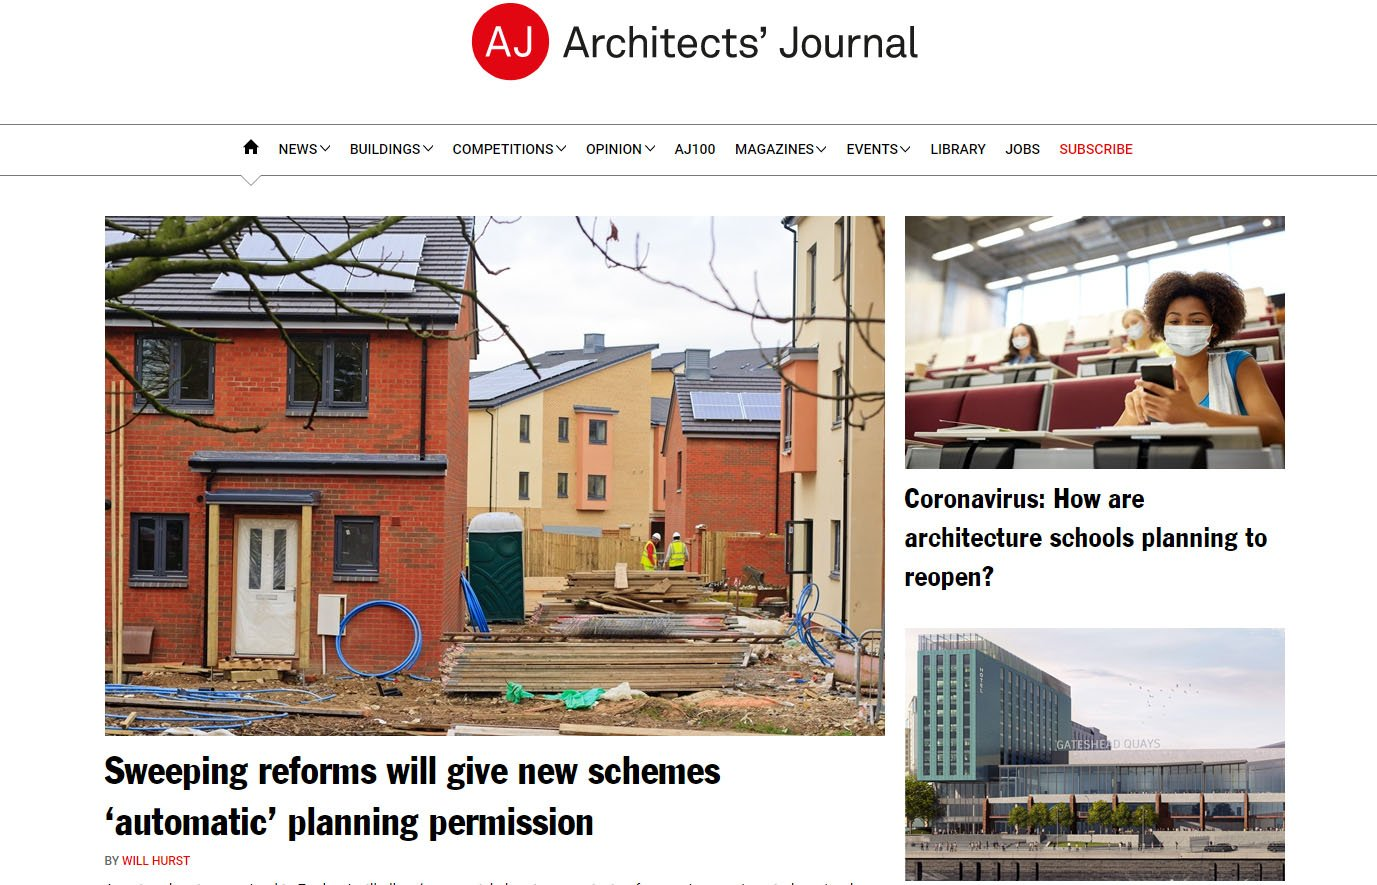 Websites for Architects: AJ